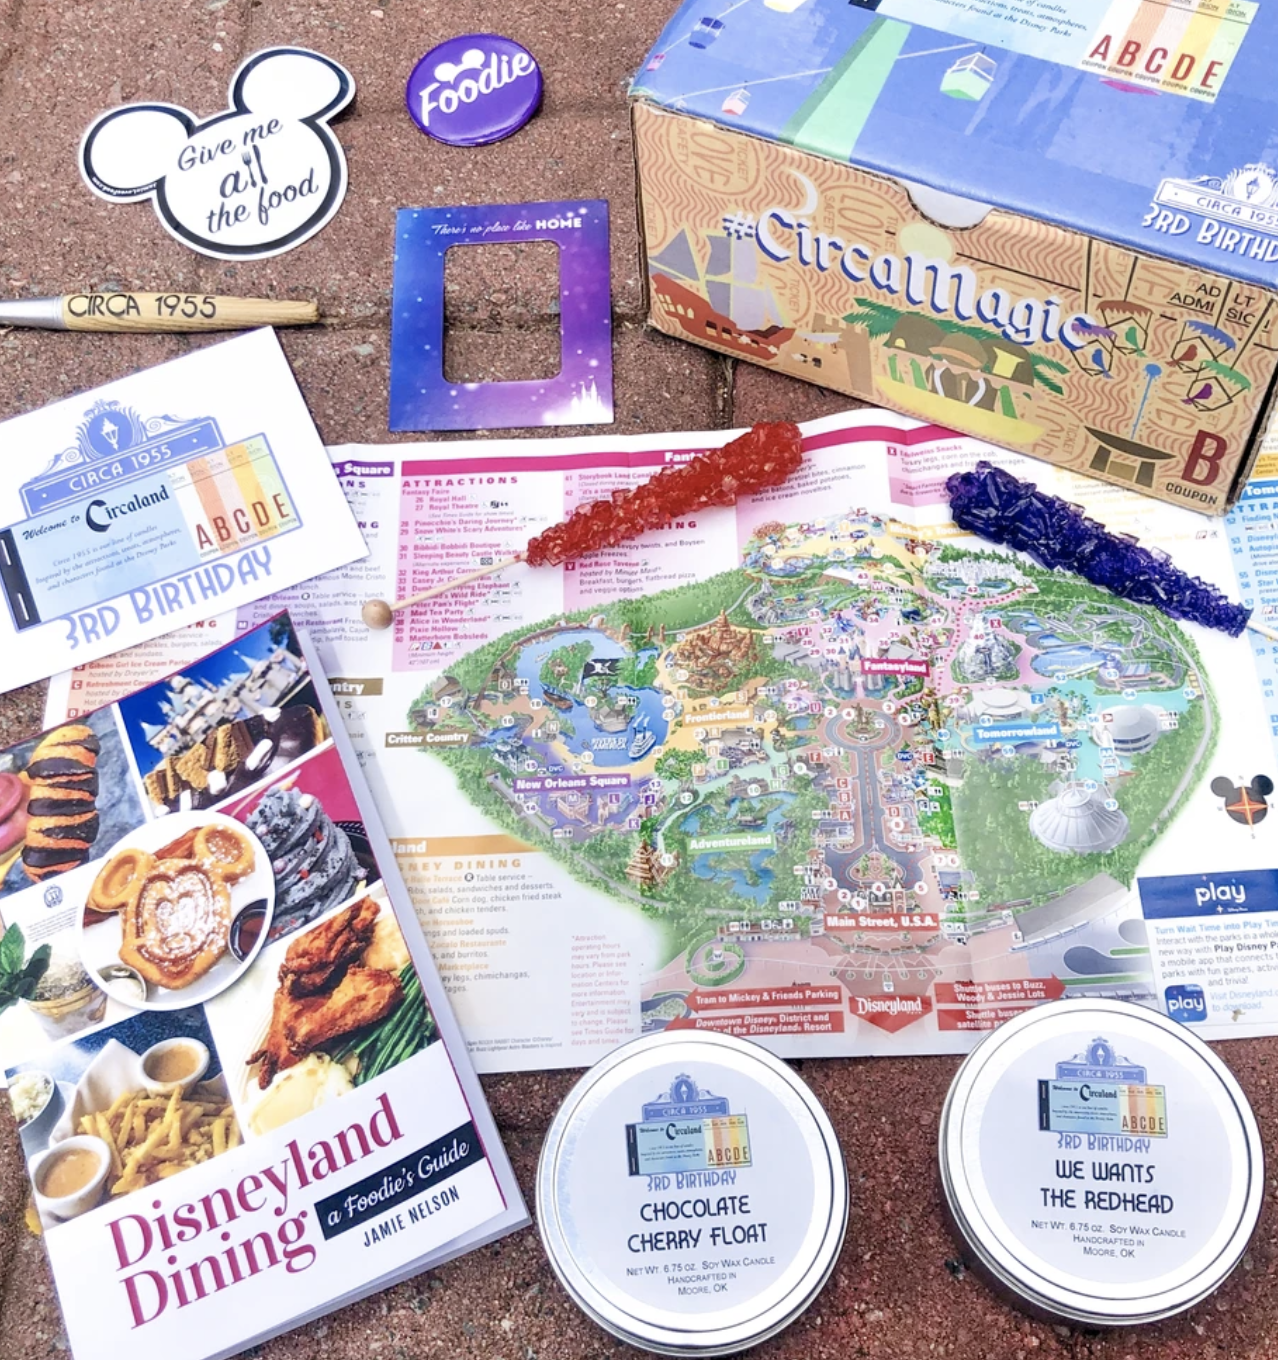 A collection of Disney items sit atop a brick floor, including a map, candles, rock candy, and a disney dining guide